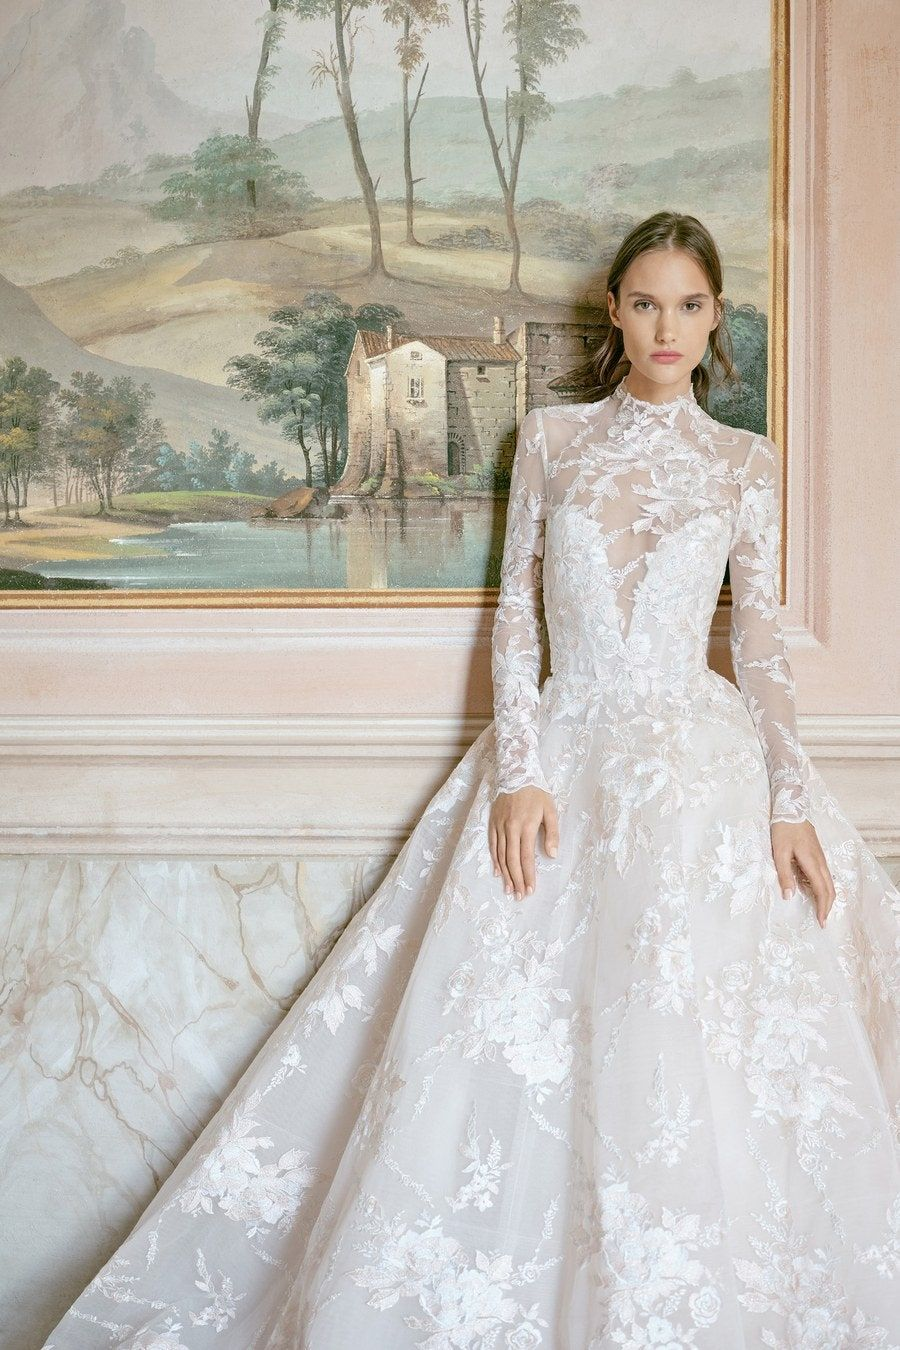 Monique Lhuillier Bridal Fall 2020 collection, runway looks, beauty, models, and reviews.